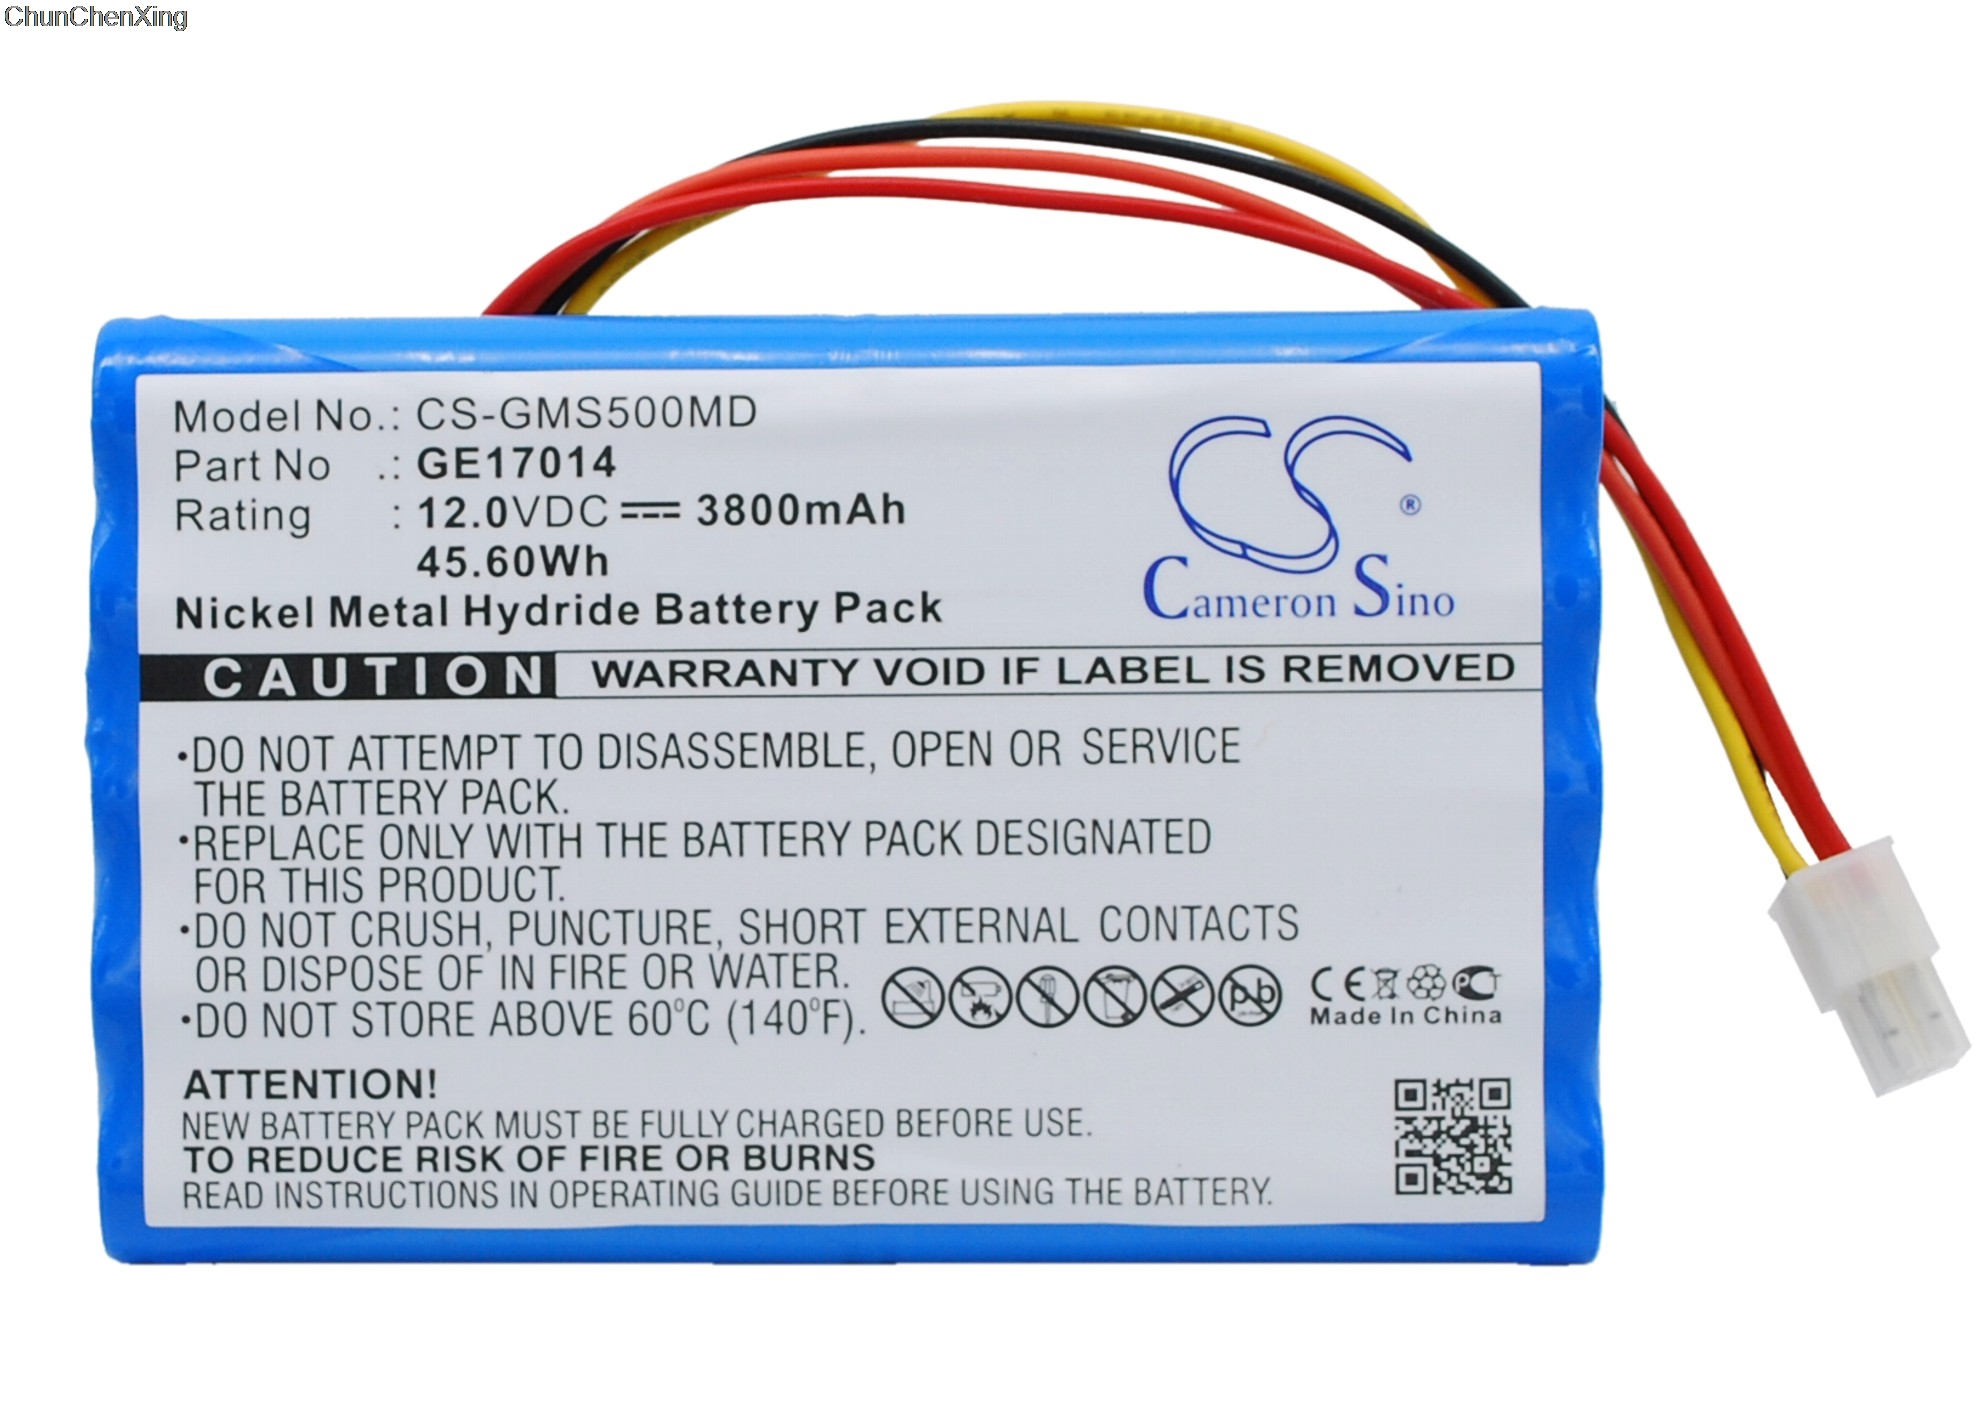 Cameron Sino 3800mAh Battery <font><b>17014</b></font>, AMED2002, B11221 for GE Datex-Ohmeda S5, S5 PATIENT MONITO, S5CAM, image